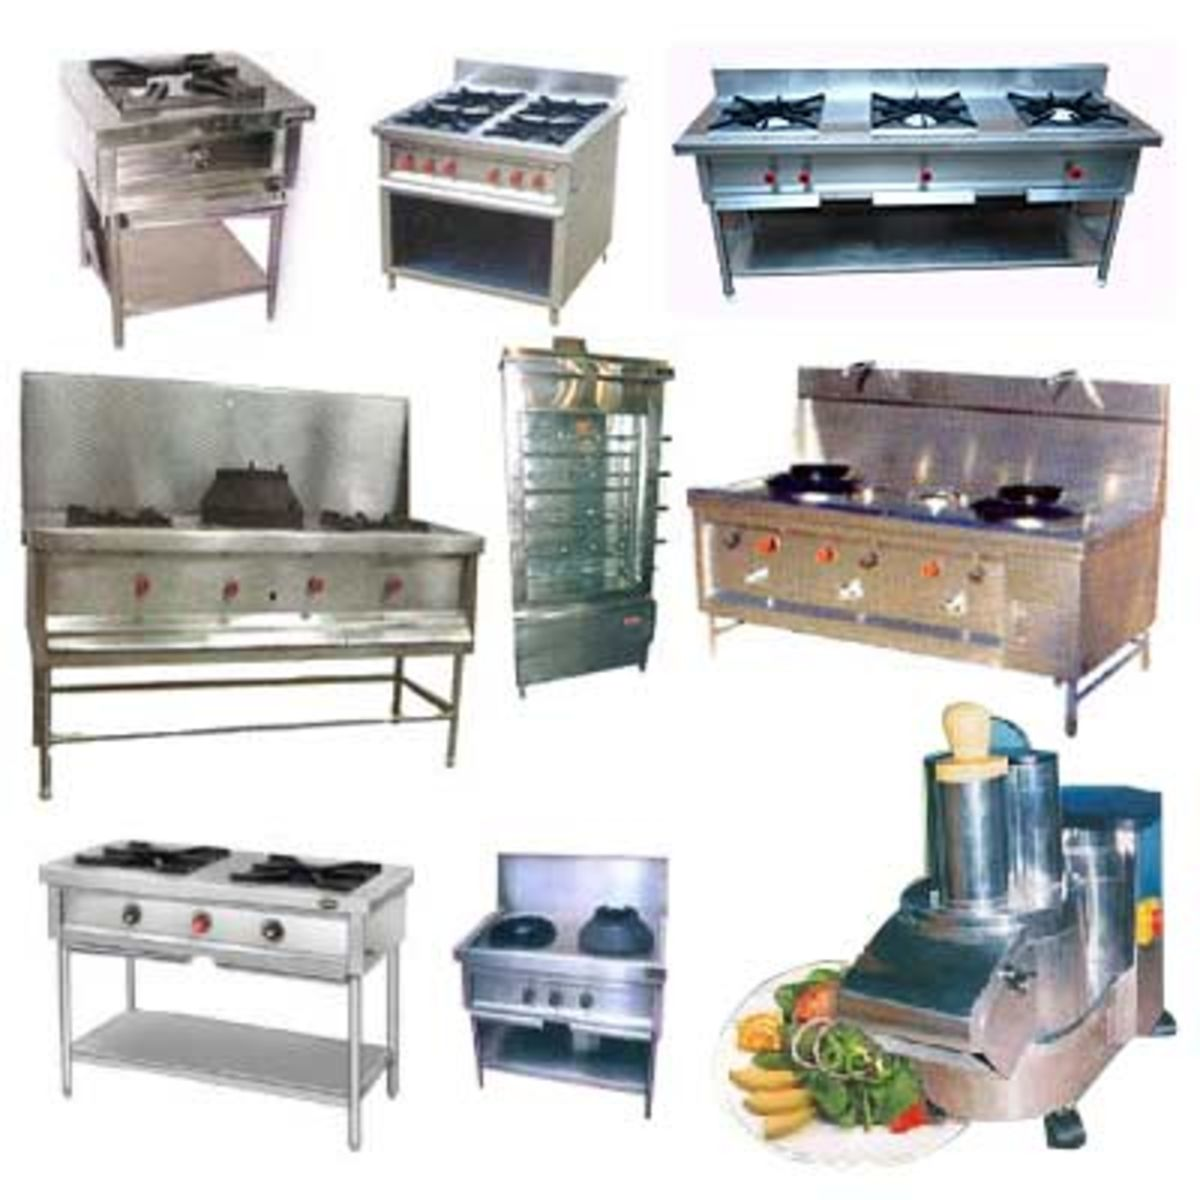 Commercial Kitchen Equipments: Top 5 Commercial Kitchen Equipment Suppliers In Australia